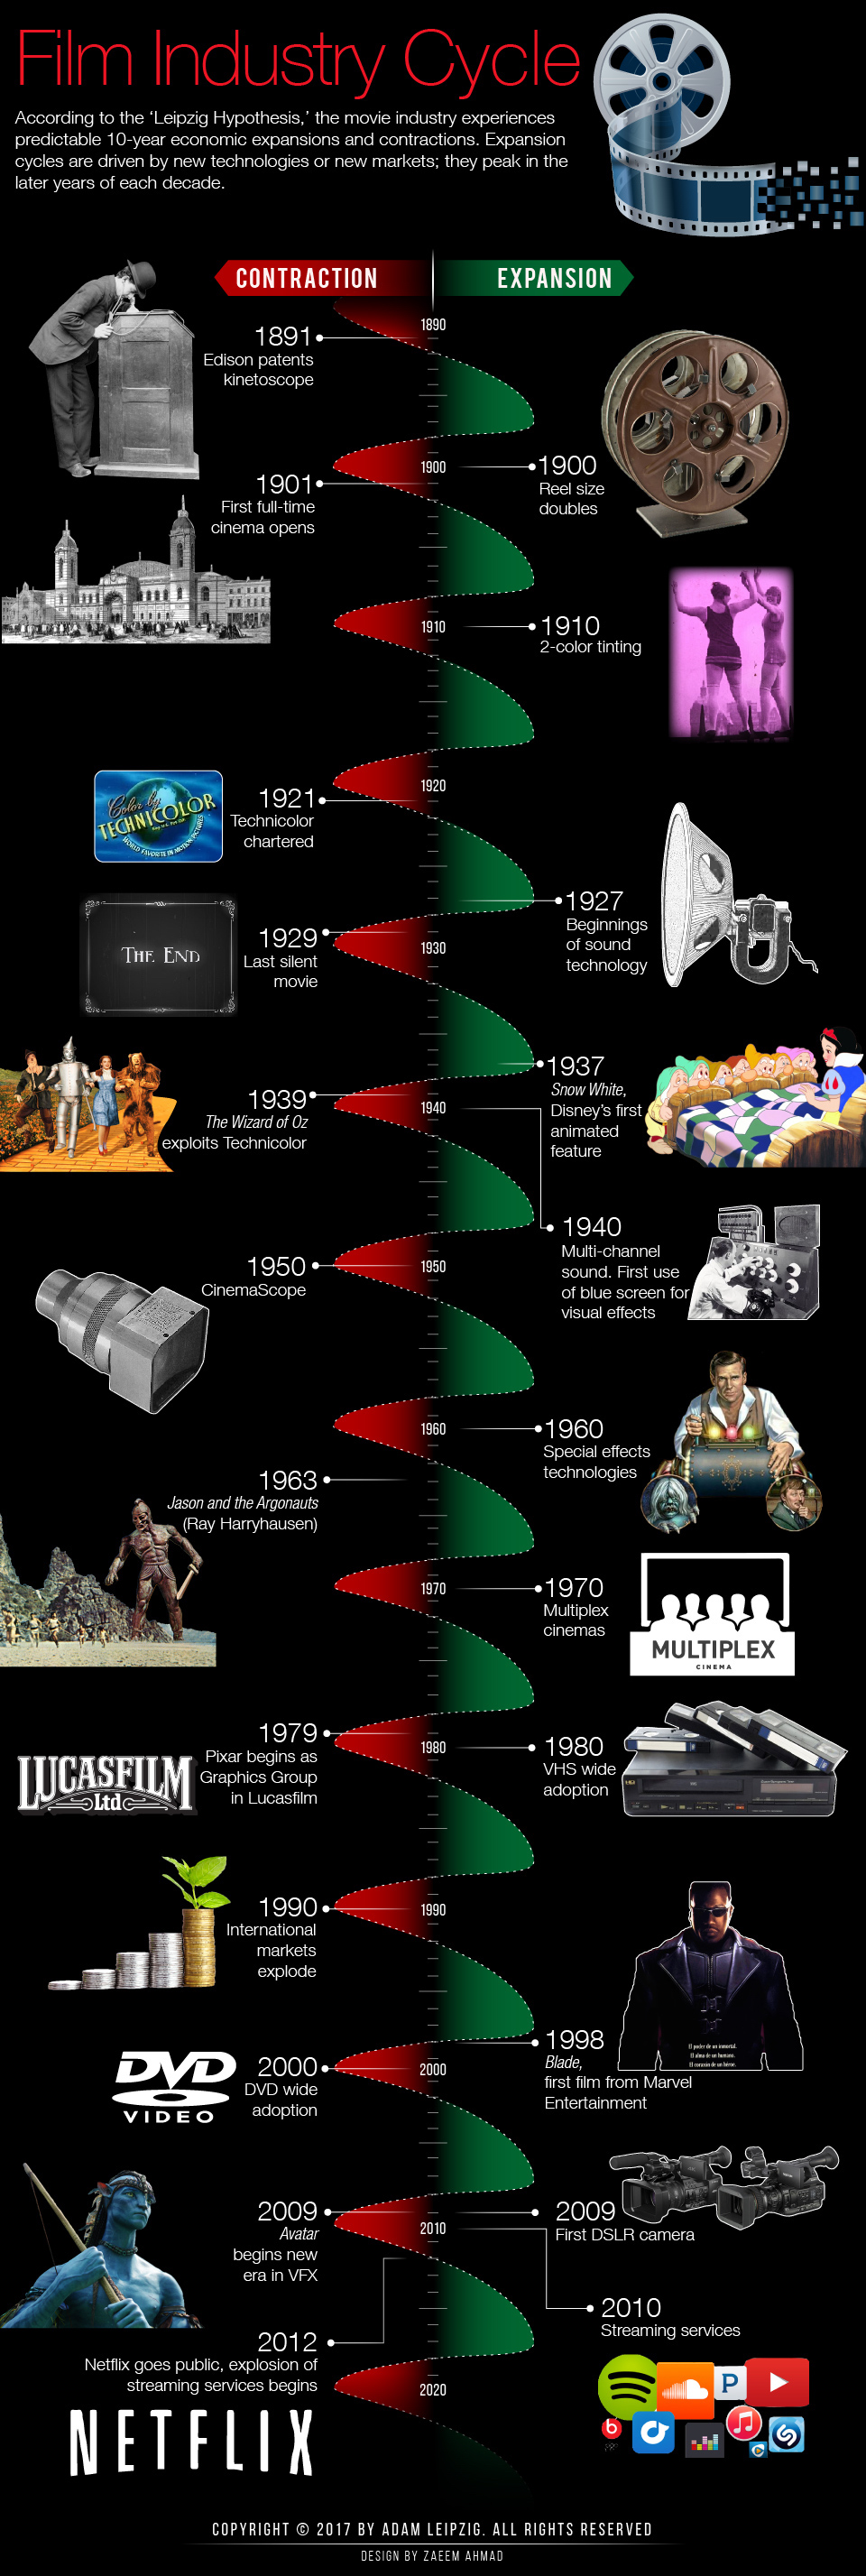 Film Industry Cycle Infographic for 10 years